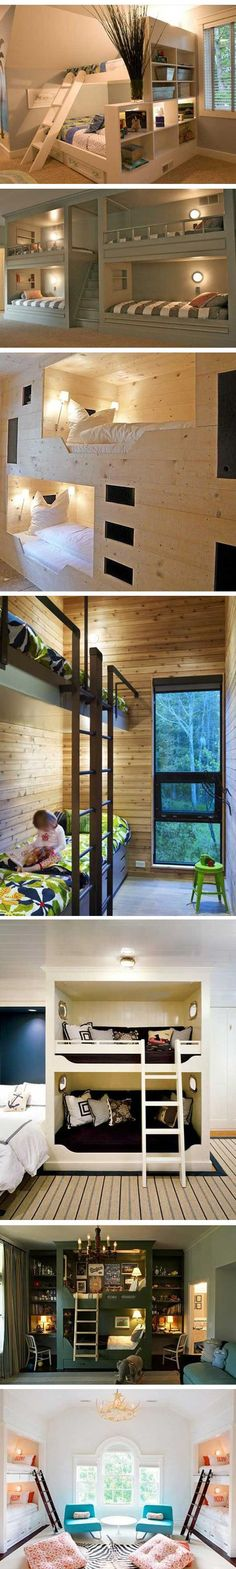 Funny pictures about The Coolest Bunk Beds. Oh, and cool pics about The Coolest Bunk Beds. Also, The Coolest Bunk Beds photos. Awesome Bedrooms, Cool Rooms, Shared Bedrooms, Dream Rooms, Dream Bedroom, Bedroom Bed, Extra Bedroom, Deco Kids, Cool Bunk Beds